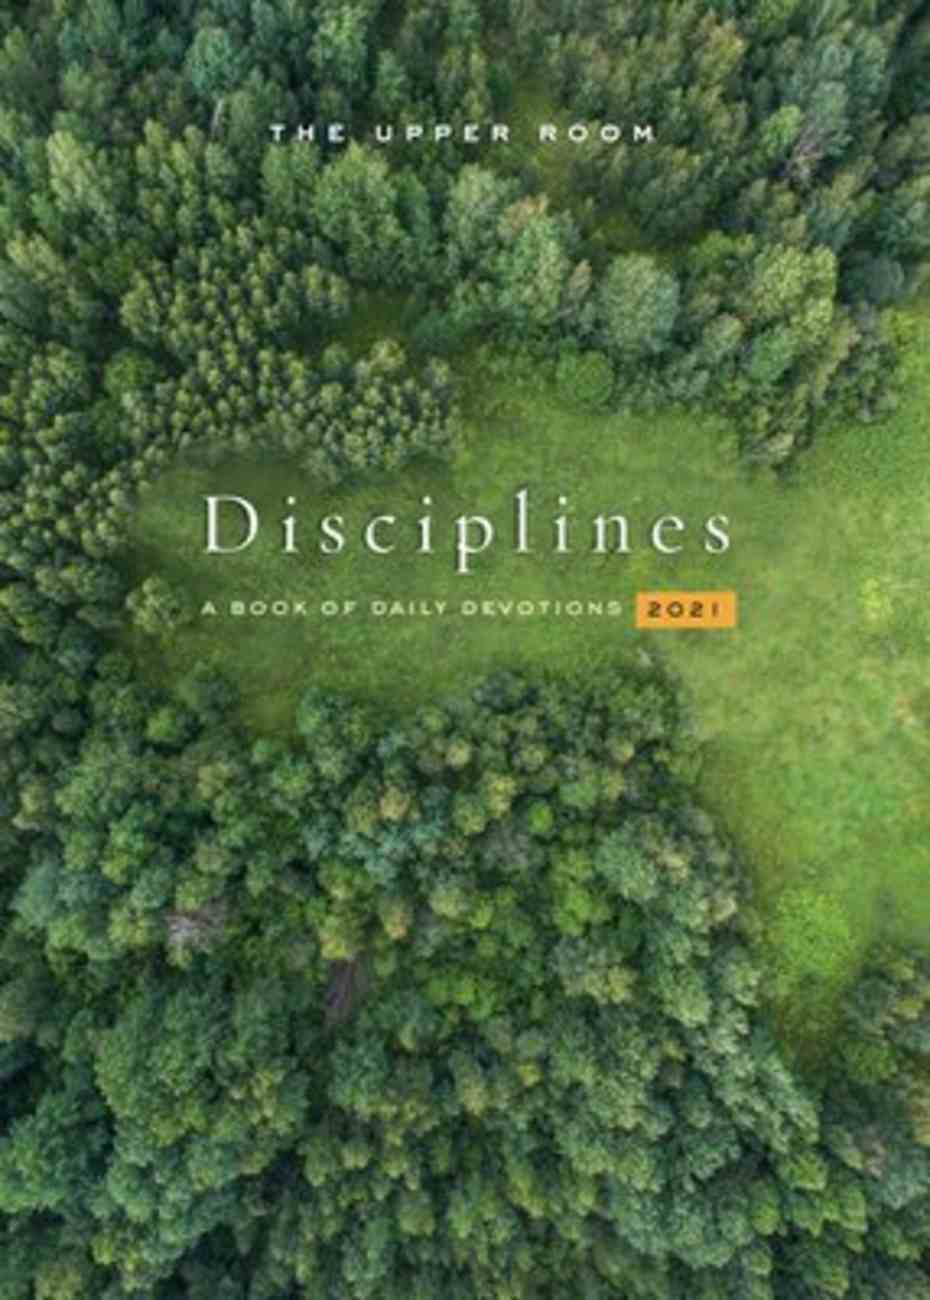 The Upper Room Disciplines 2021: A Book of Daily Devotions Paperback